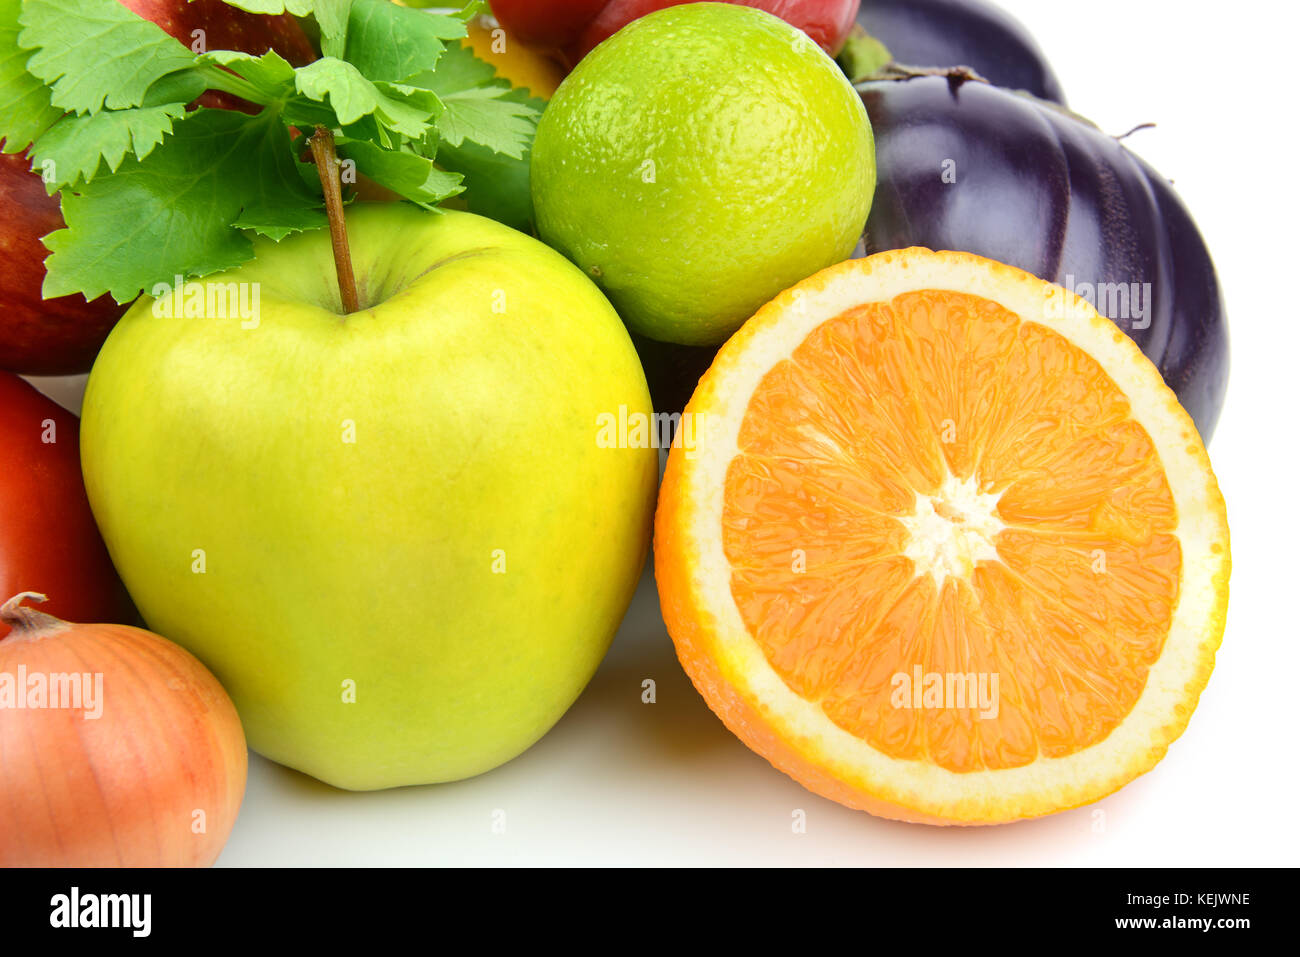 fruits and vegetables on a white background - Stock Image